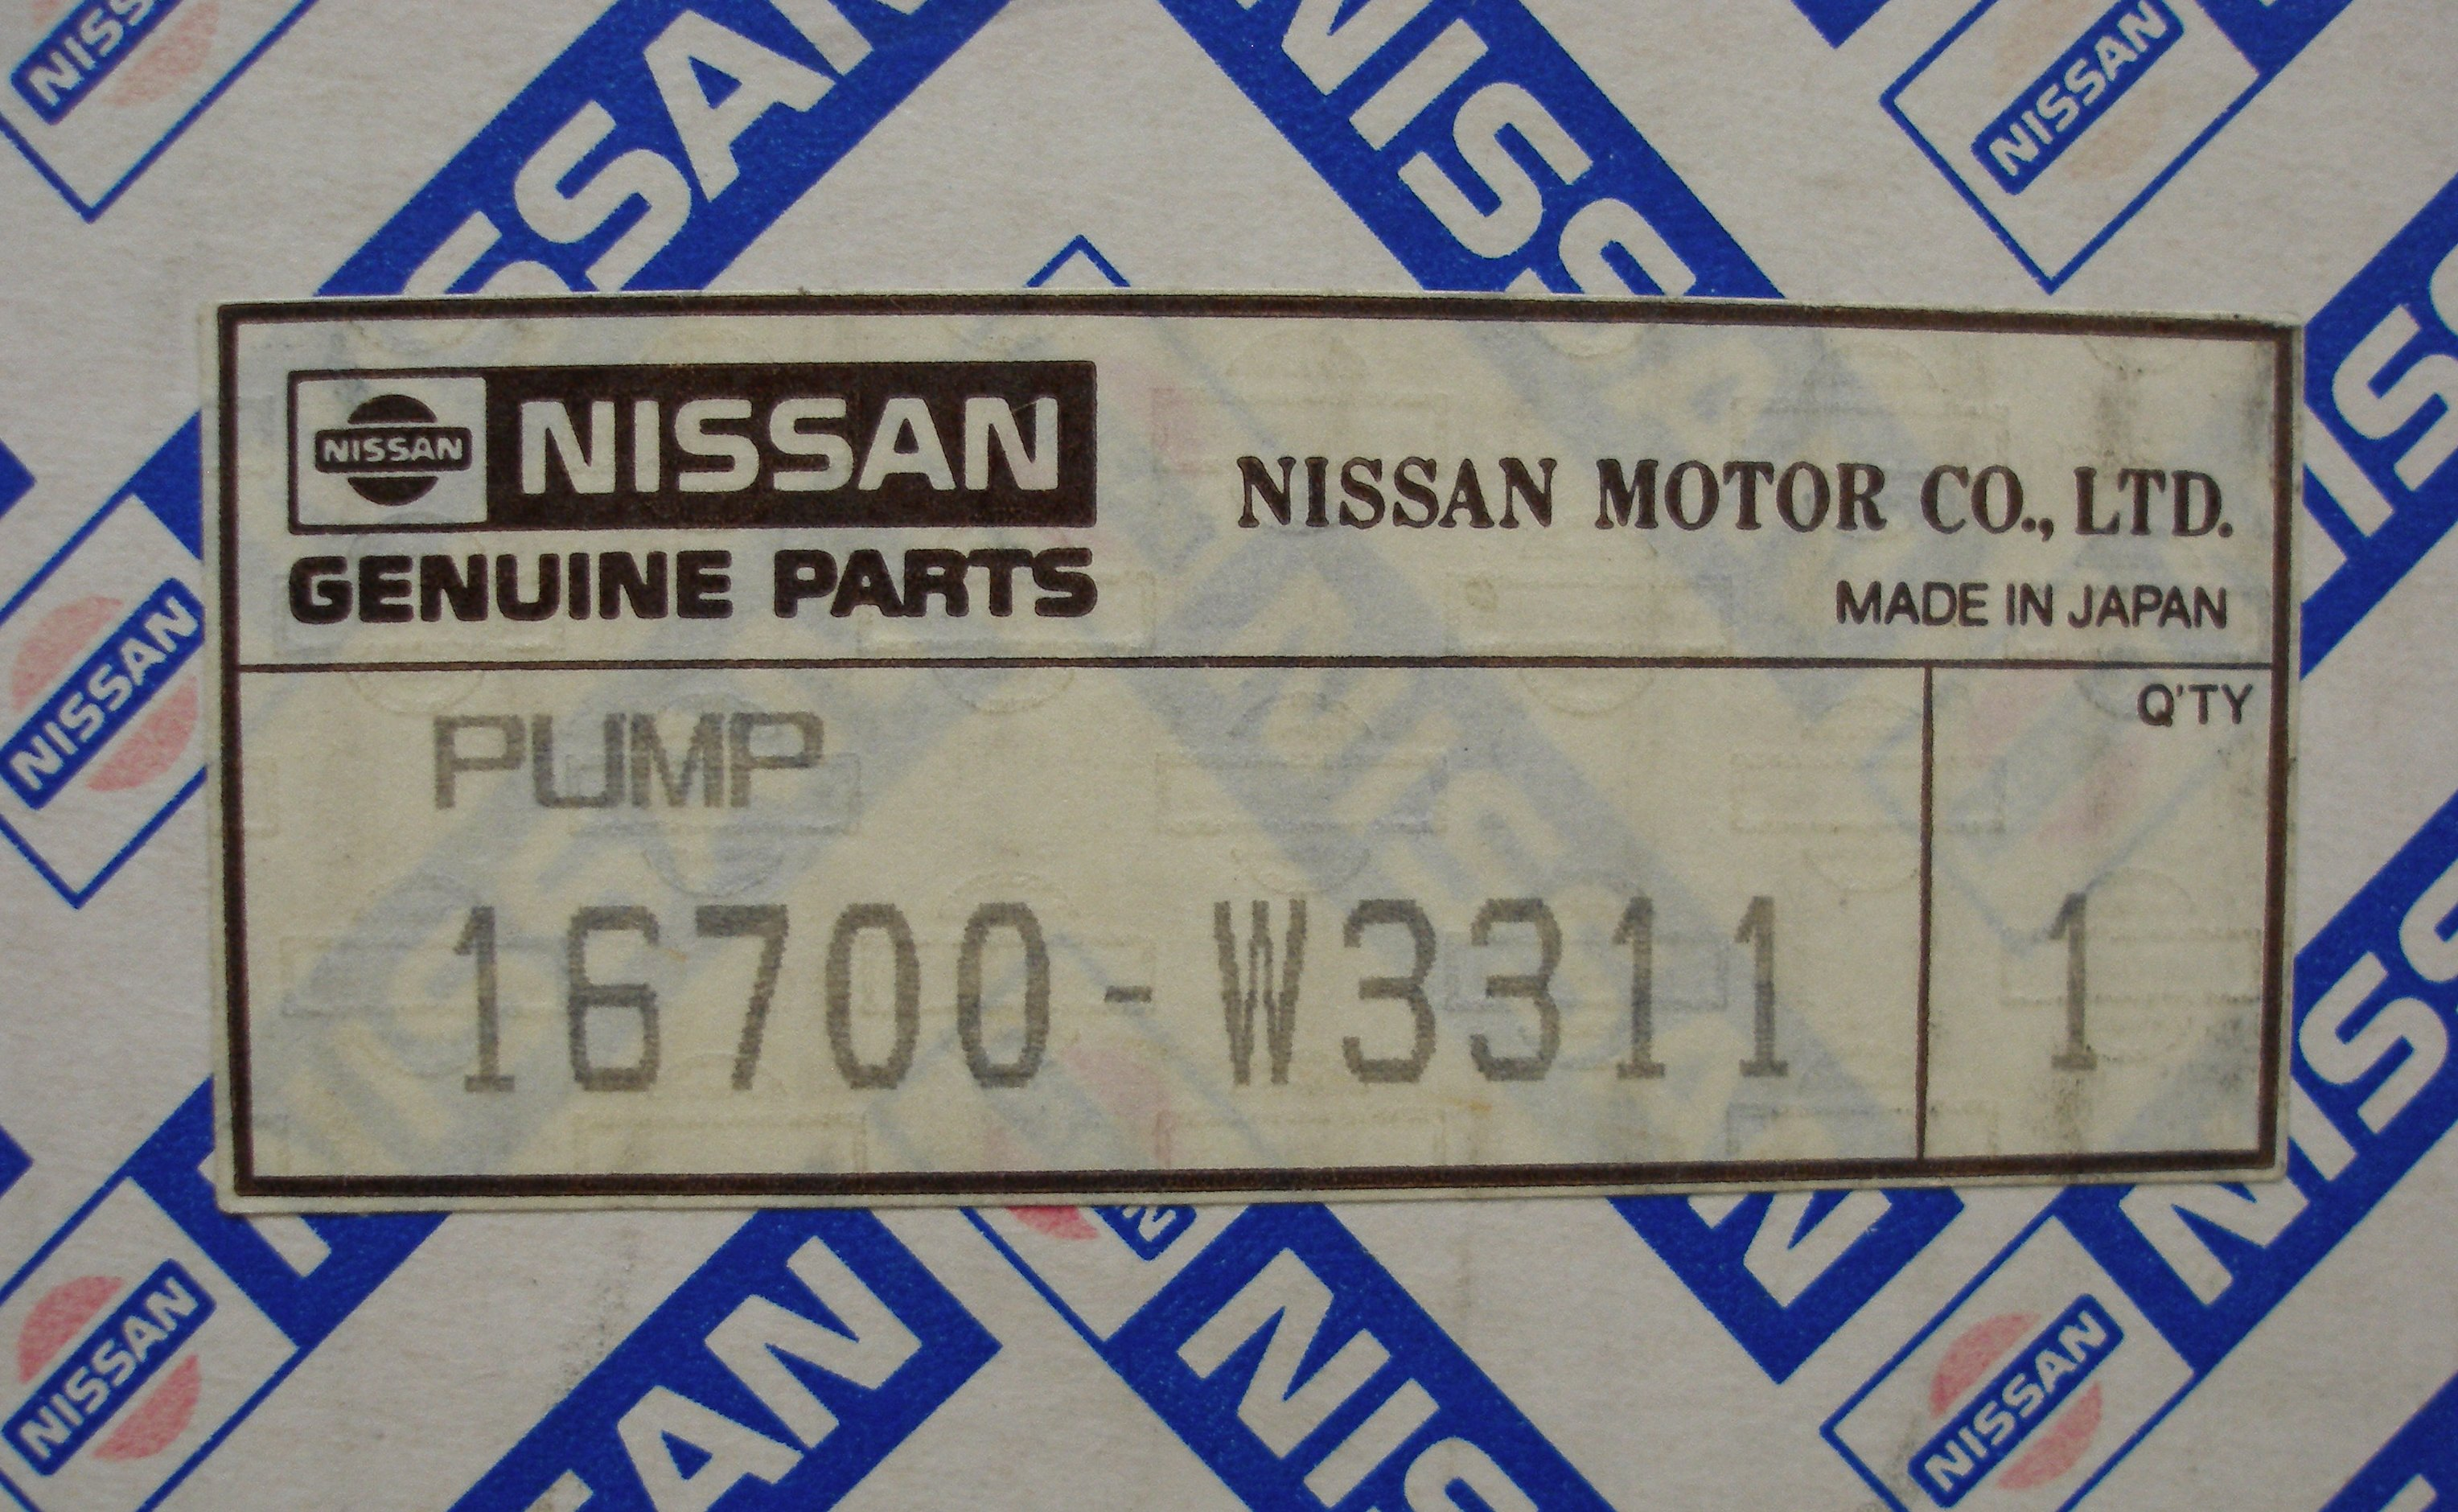 Nissandiesel Forums View Topic Sold All Ld28 Injection Pump Nissan Diesel Engine Schematics Image